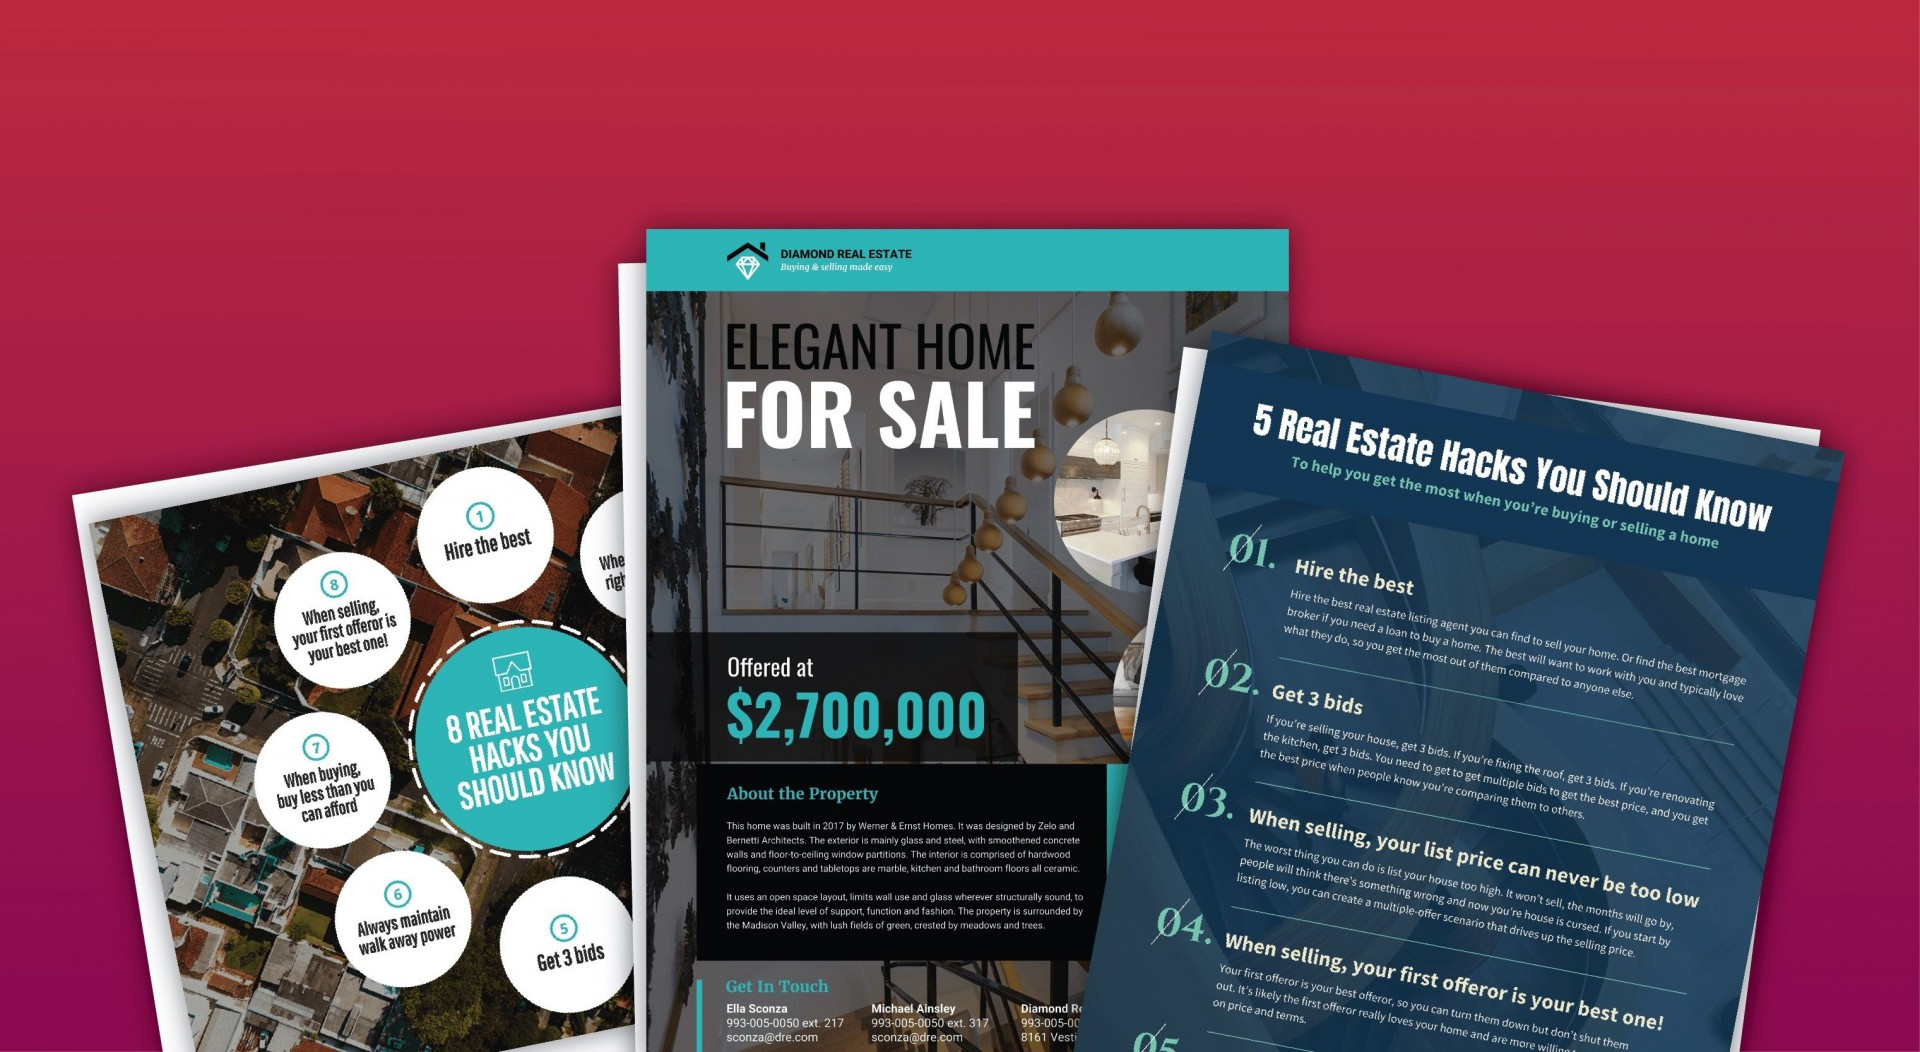 006 Simple Real Estate Marketing Video Template Highest Quality  Templates1920